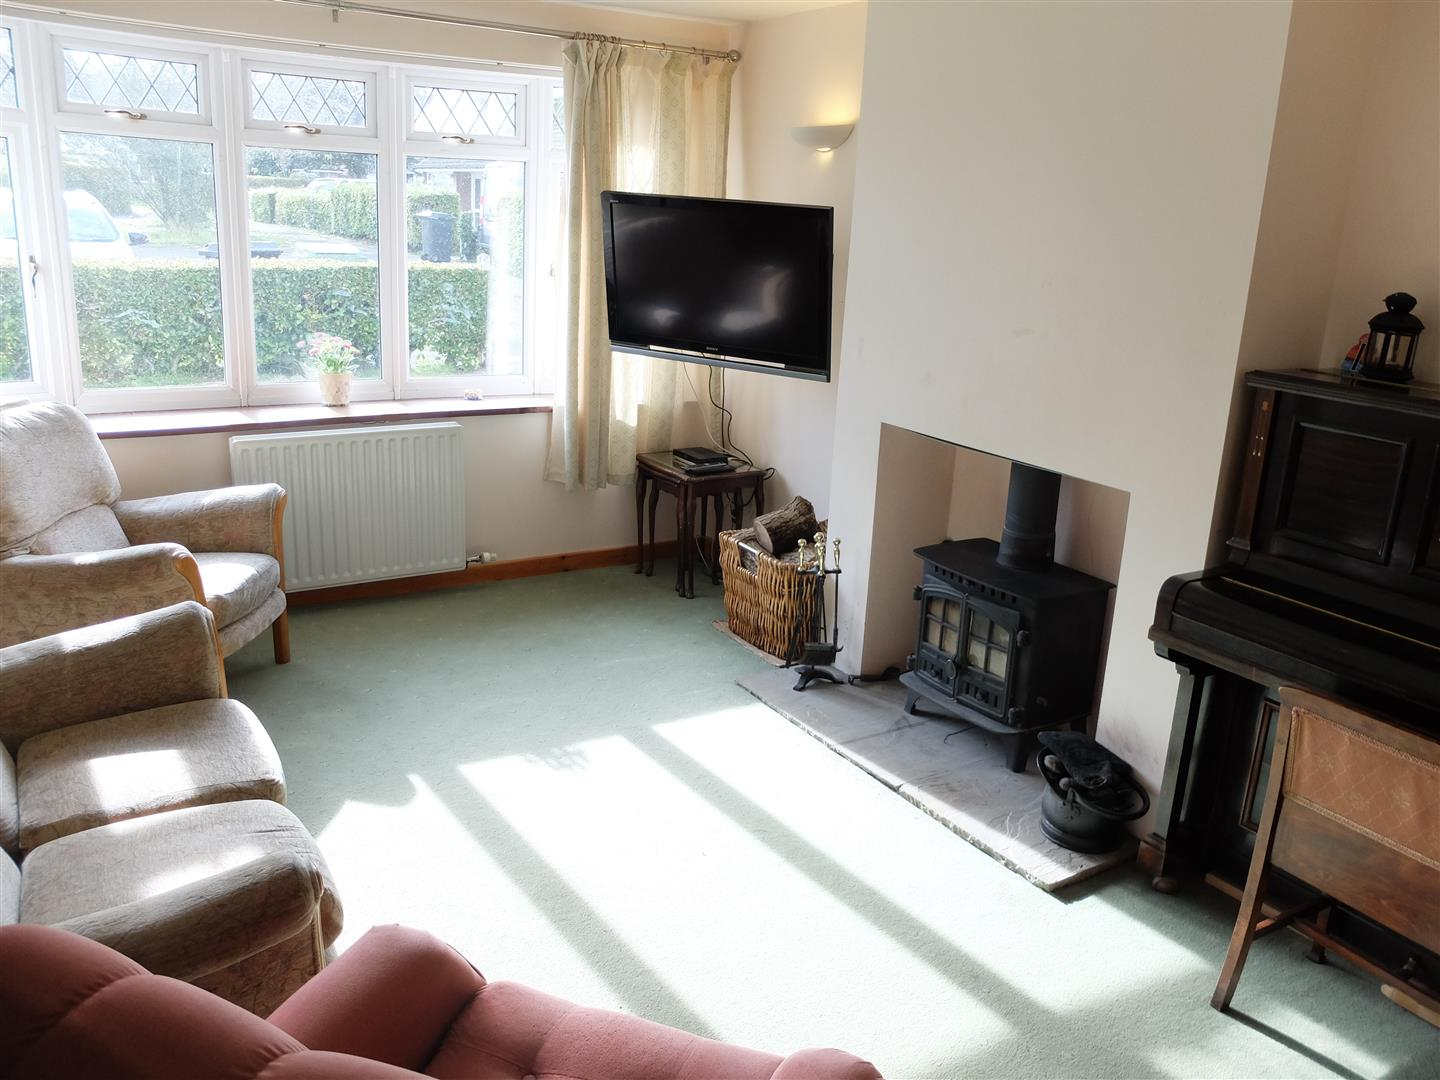 4 Bedrooms Bungalow - Semi Detached For Sale 15 Caldew Drive Carlisle